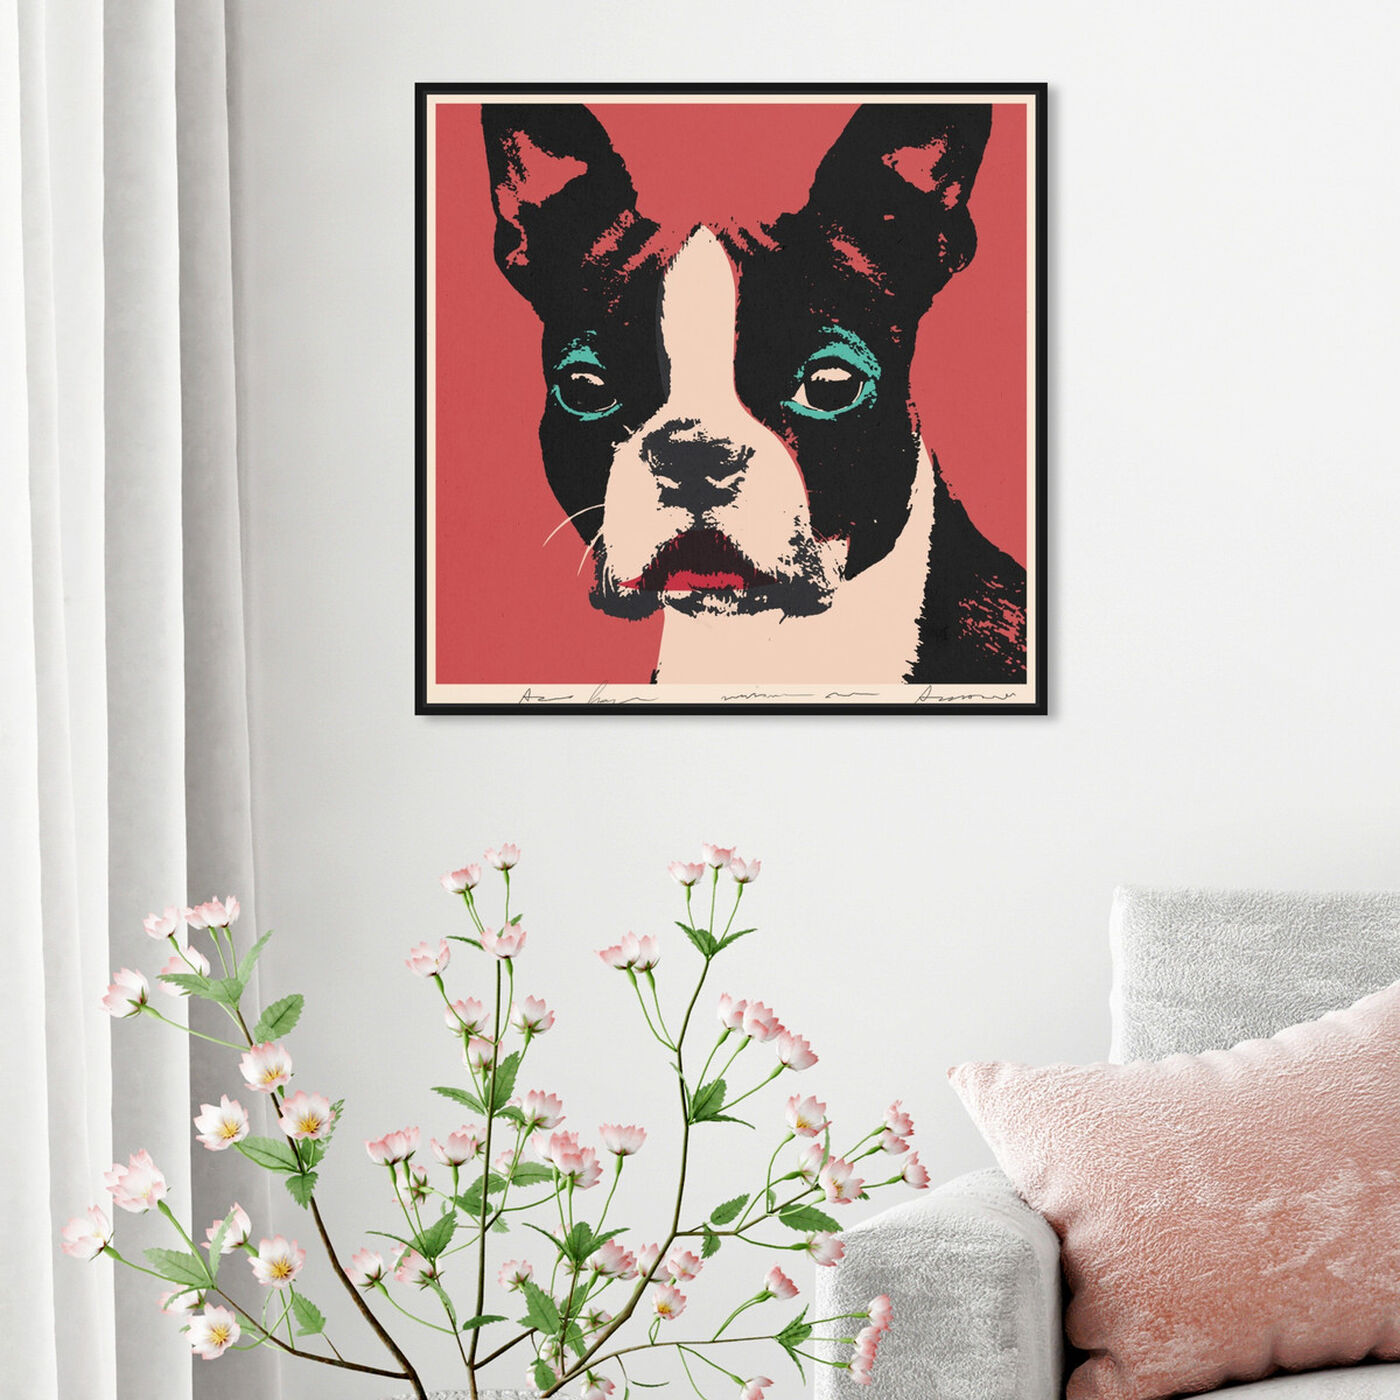 Hanging view of Doggy Warhol featuring animals and dogs and puppies art.